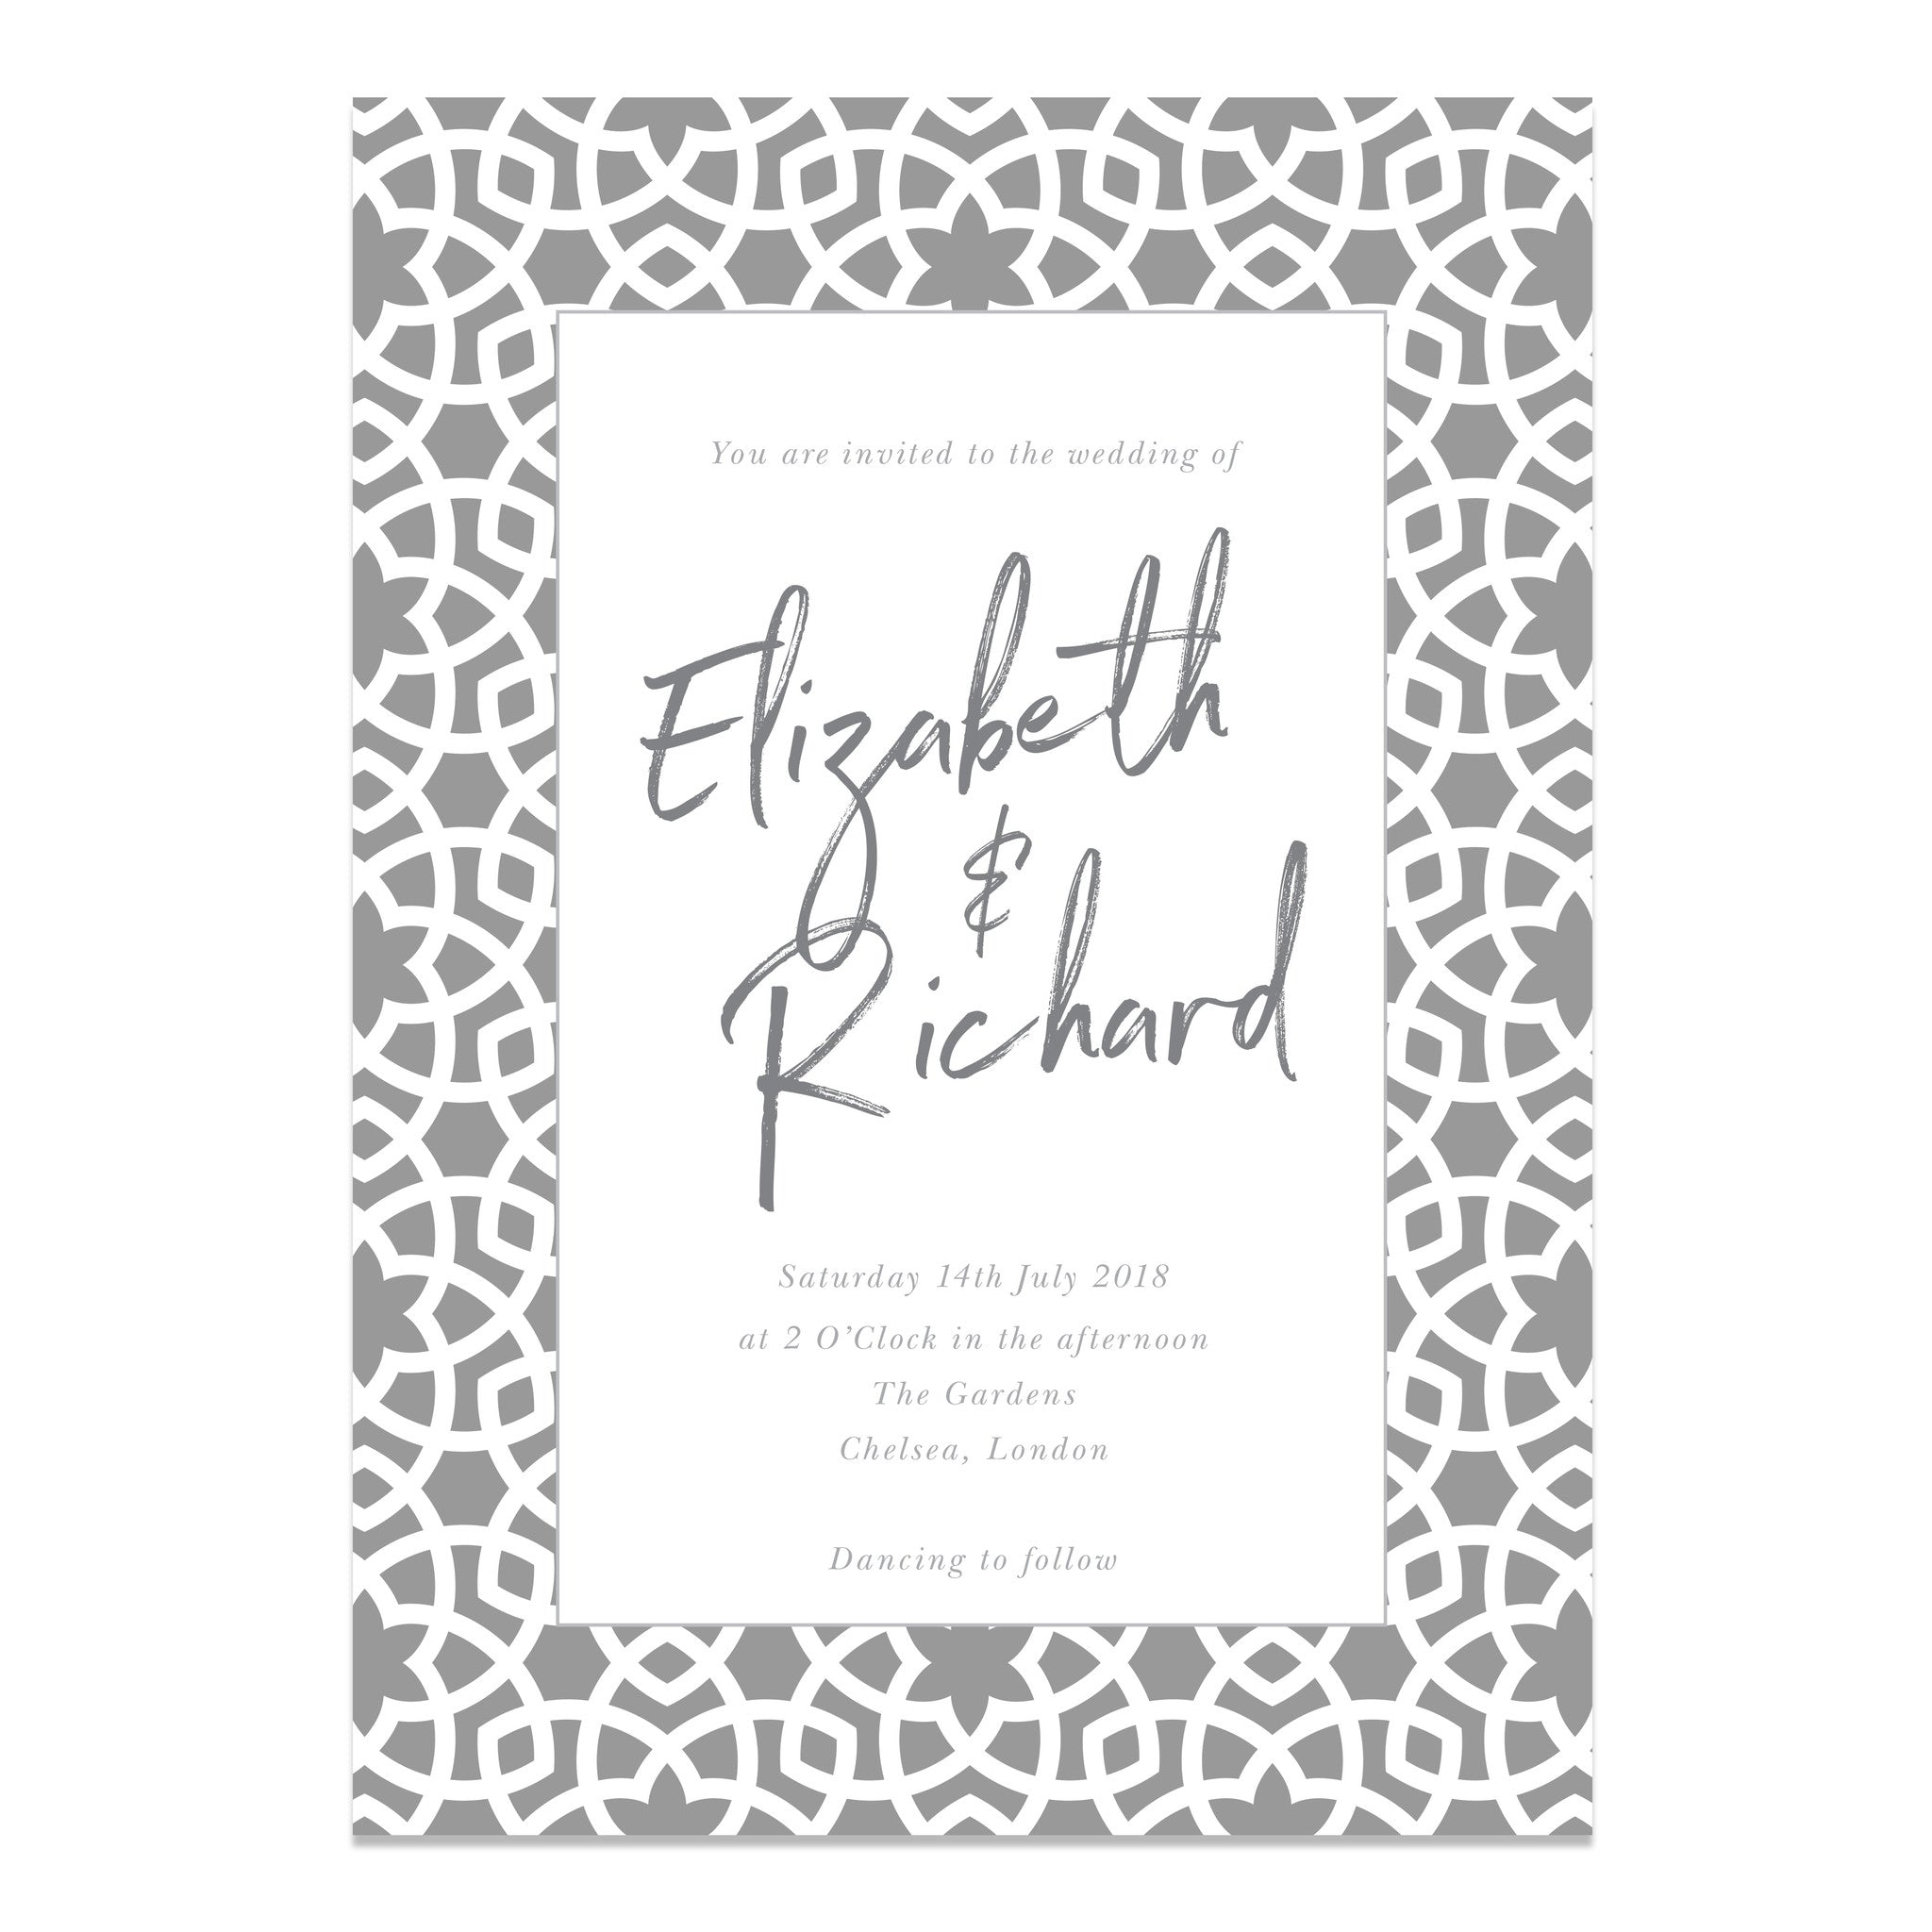 Moroccan Vibes Wedding Invitations - Hand lettered Stationery | Old ...